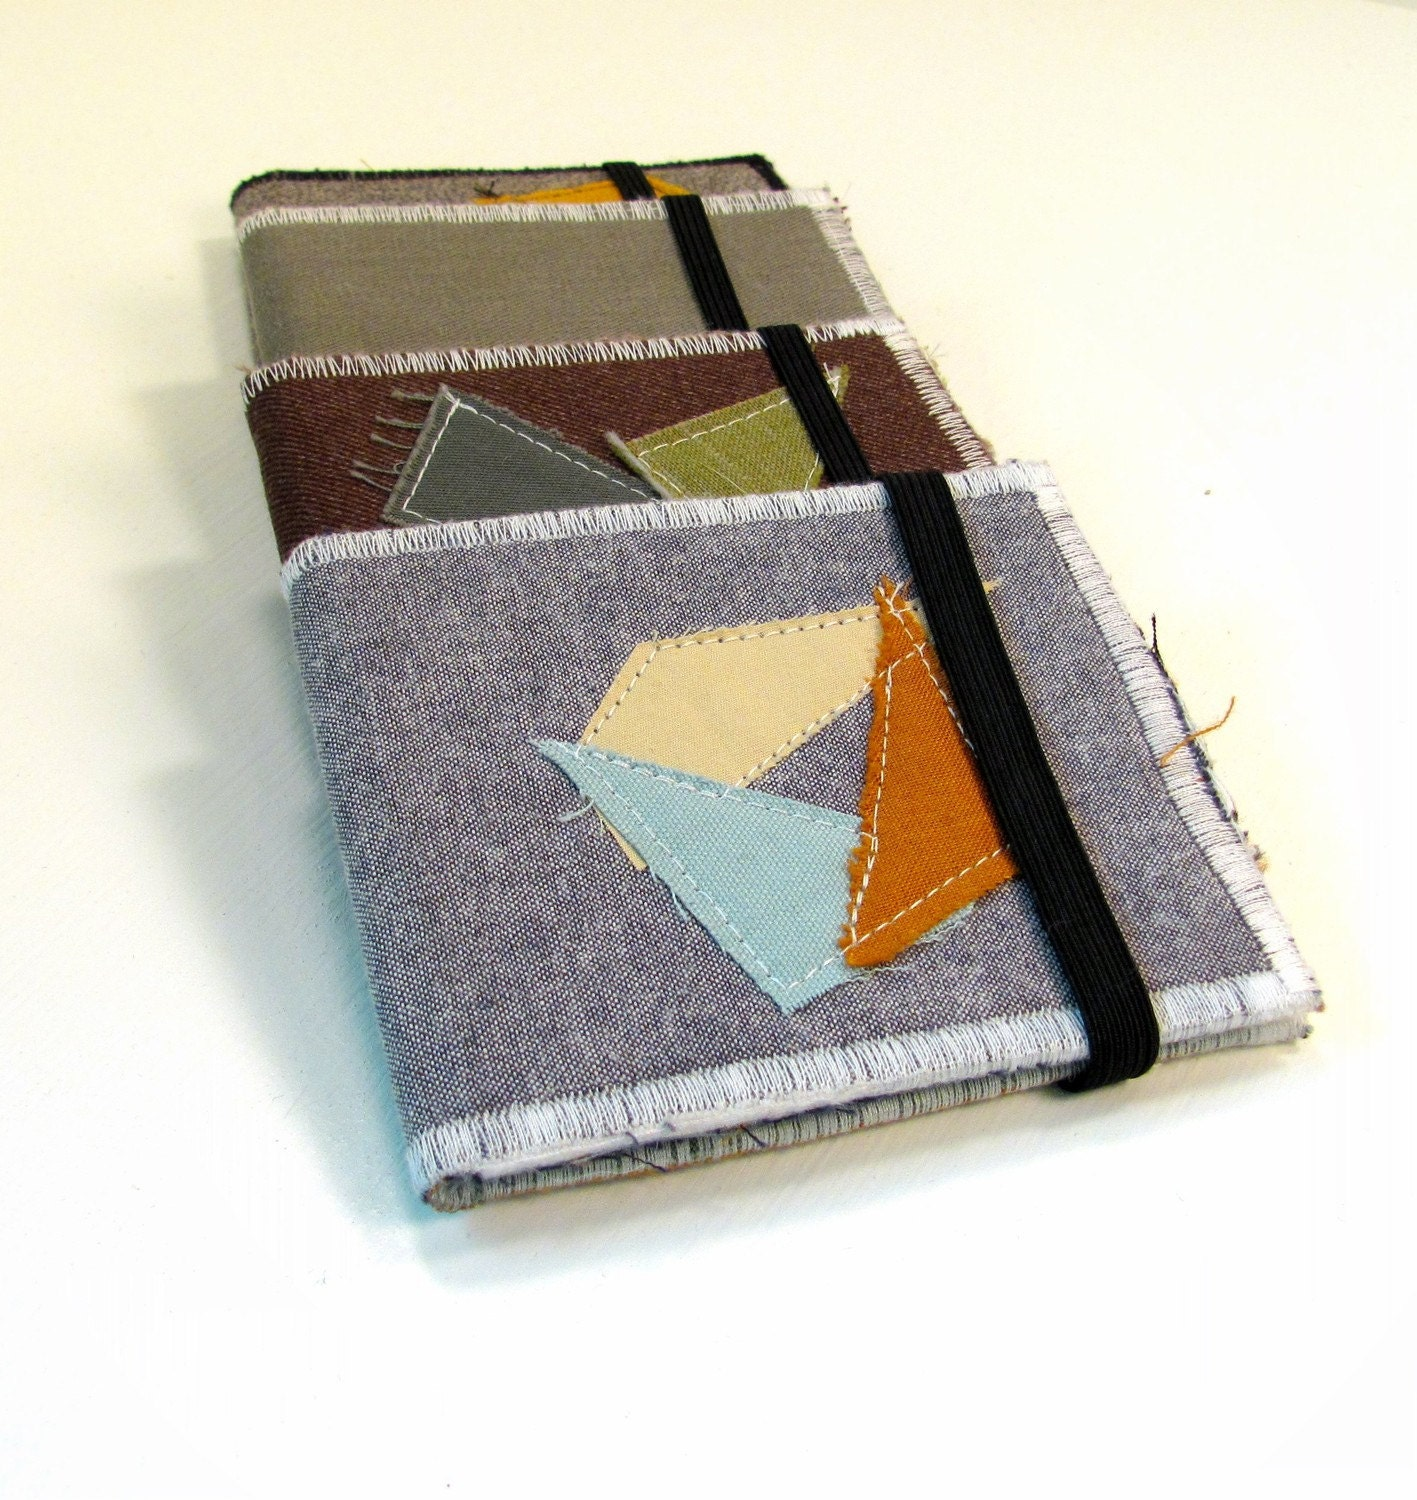 Upcycled Billfold Wallet in Light Gray with Geometric Applique